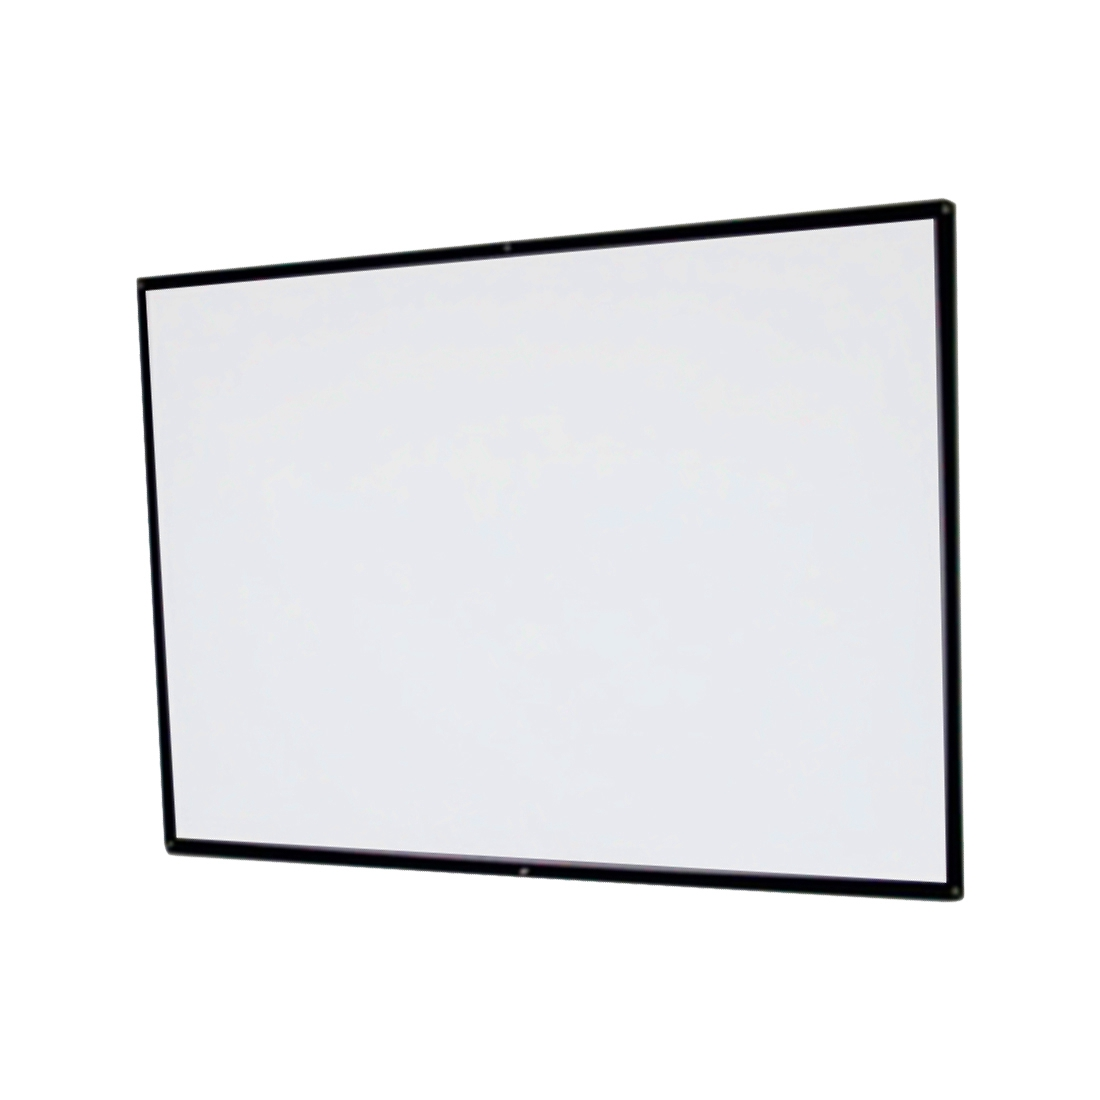 MAHA 60 inch 16:9 Fabric Material Matte White Projector Projection Screen<br><br>Aliexpress